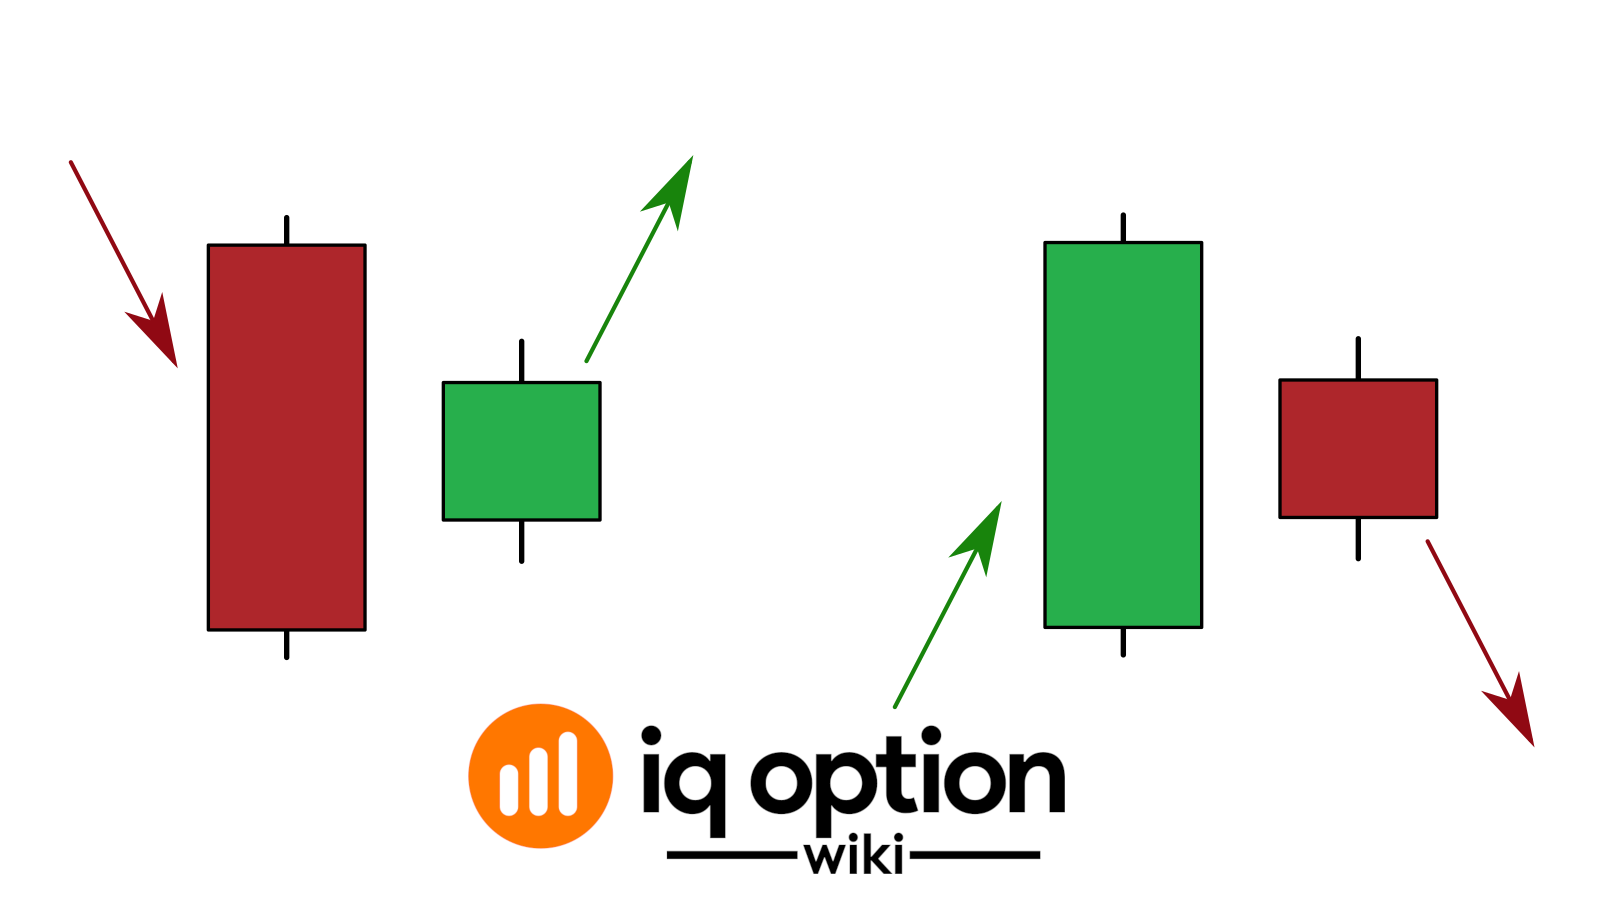 Guide for Using Harami Candles to Determine Top and Bottom of Trends on IQ Option 1